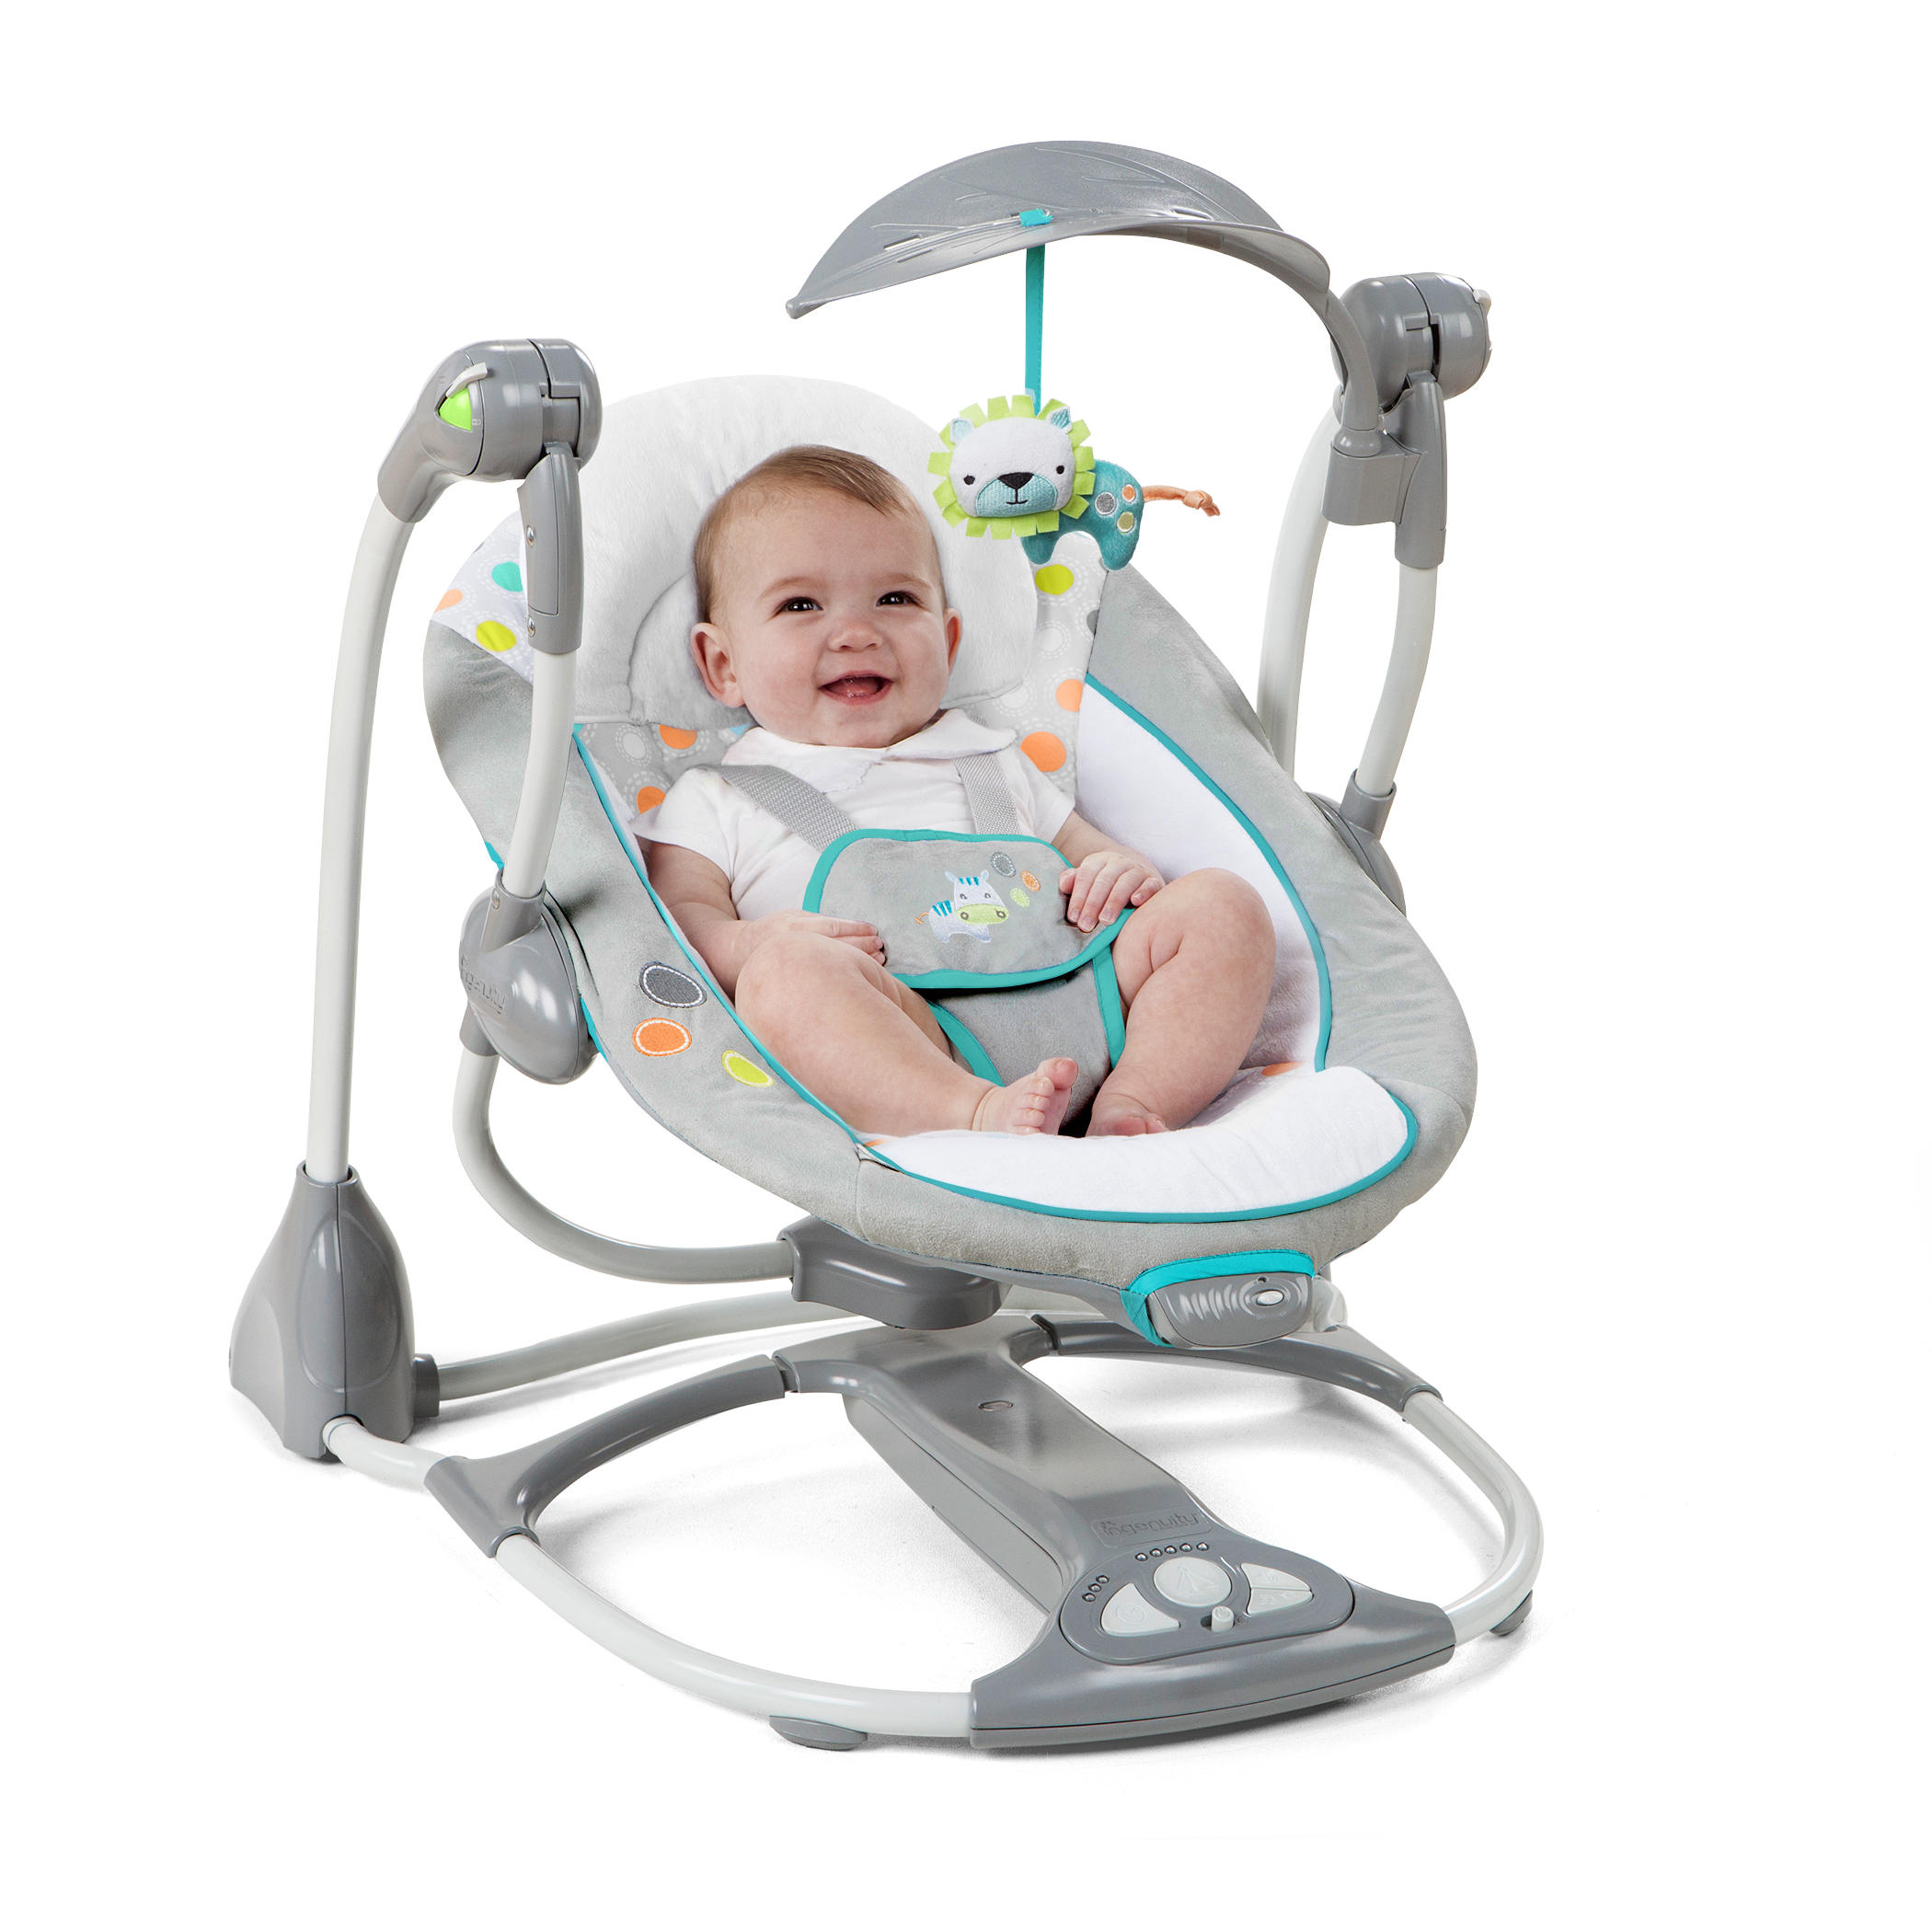 Strange Details About Baby Swing 2 Seat Infant Toddler Rocker Chair Little Portable Convertible New Machost Co Dining Chair Design Ideas Machostcouk